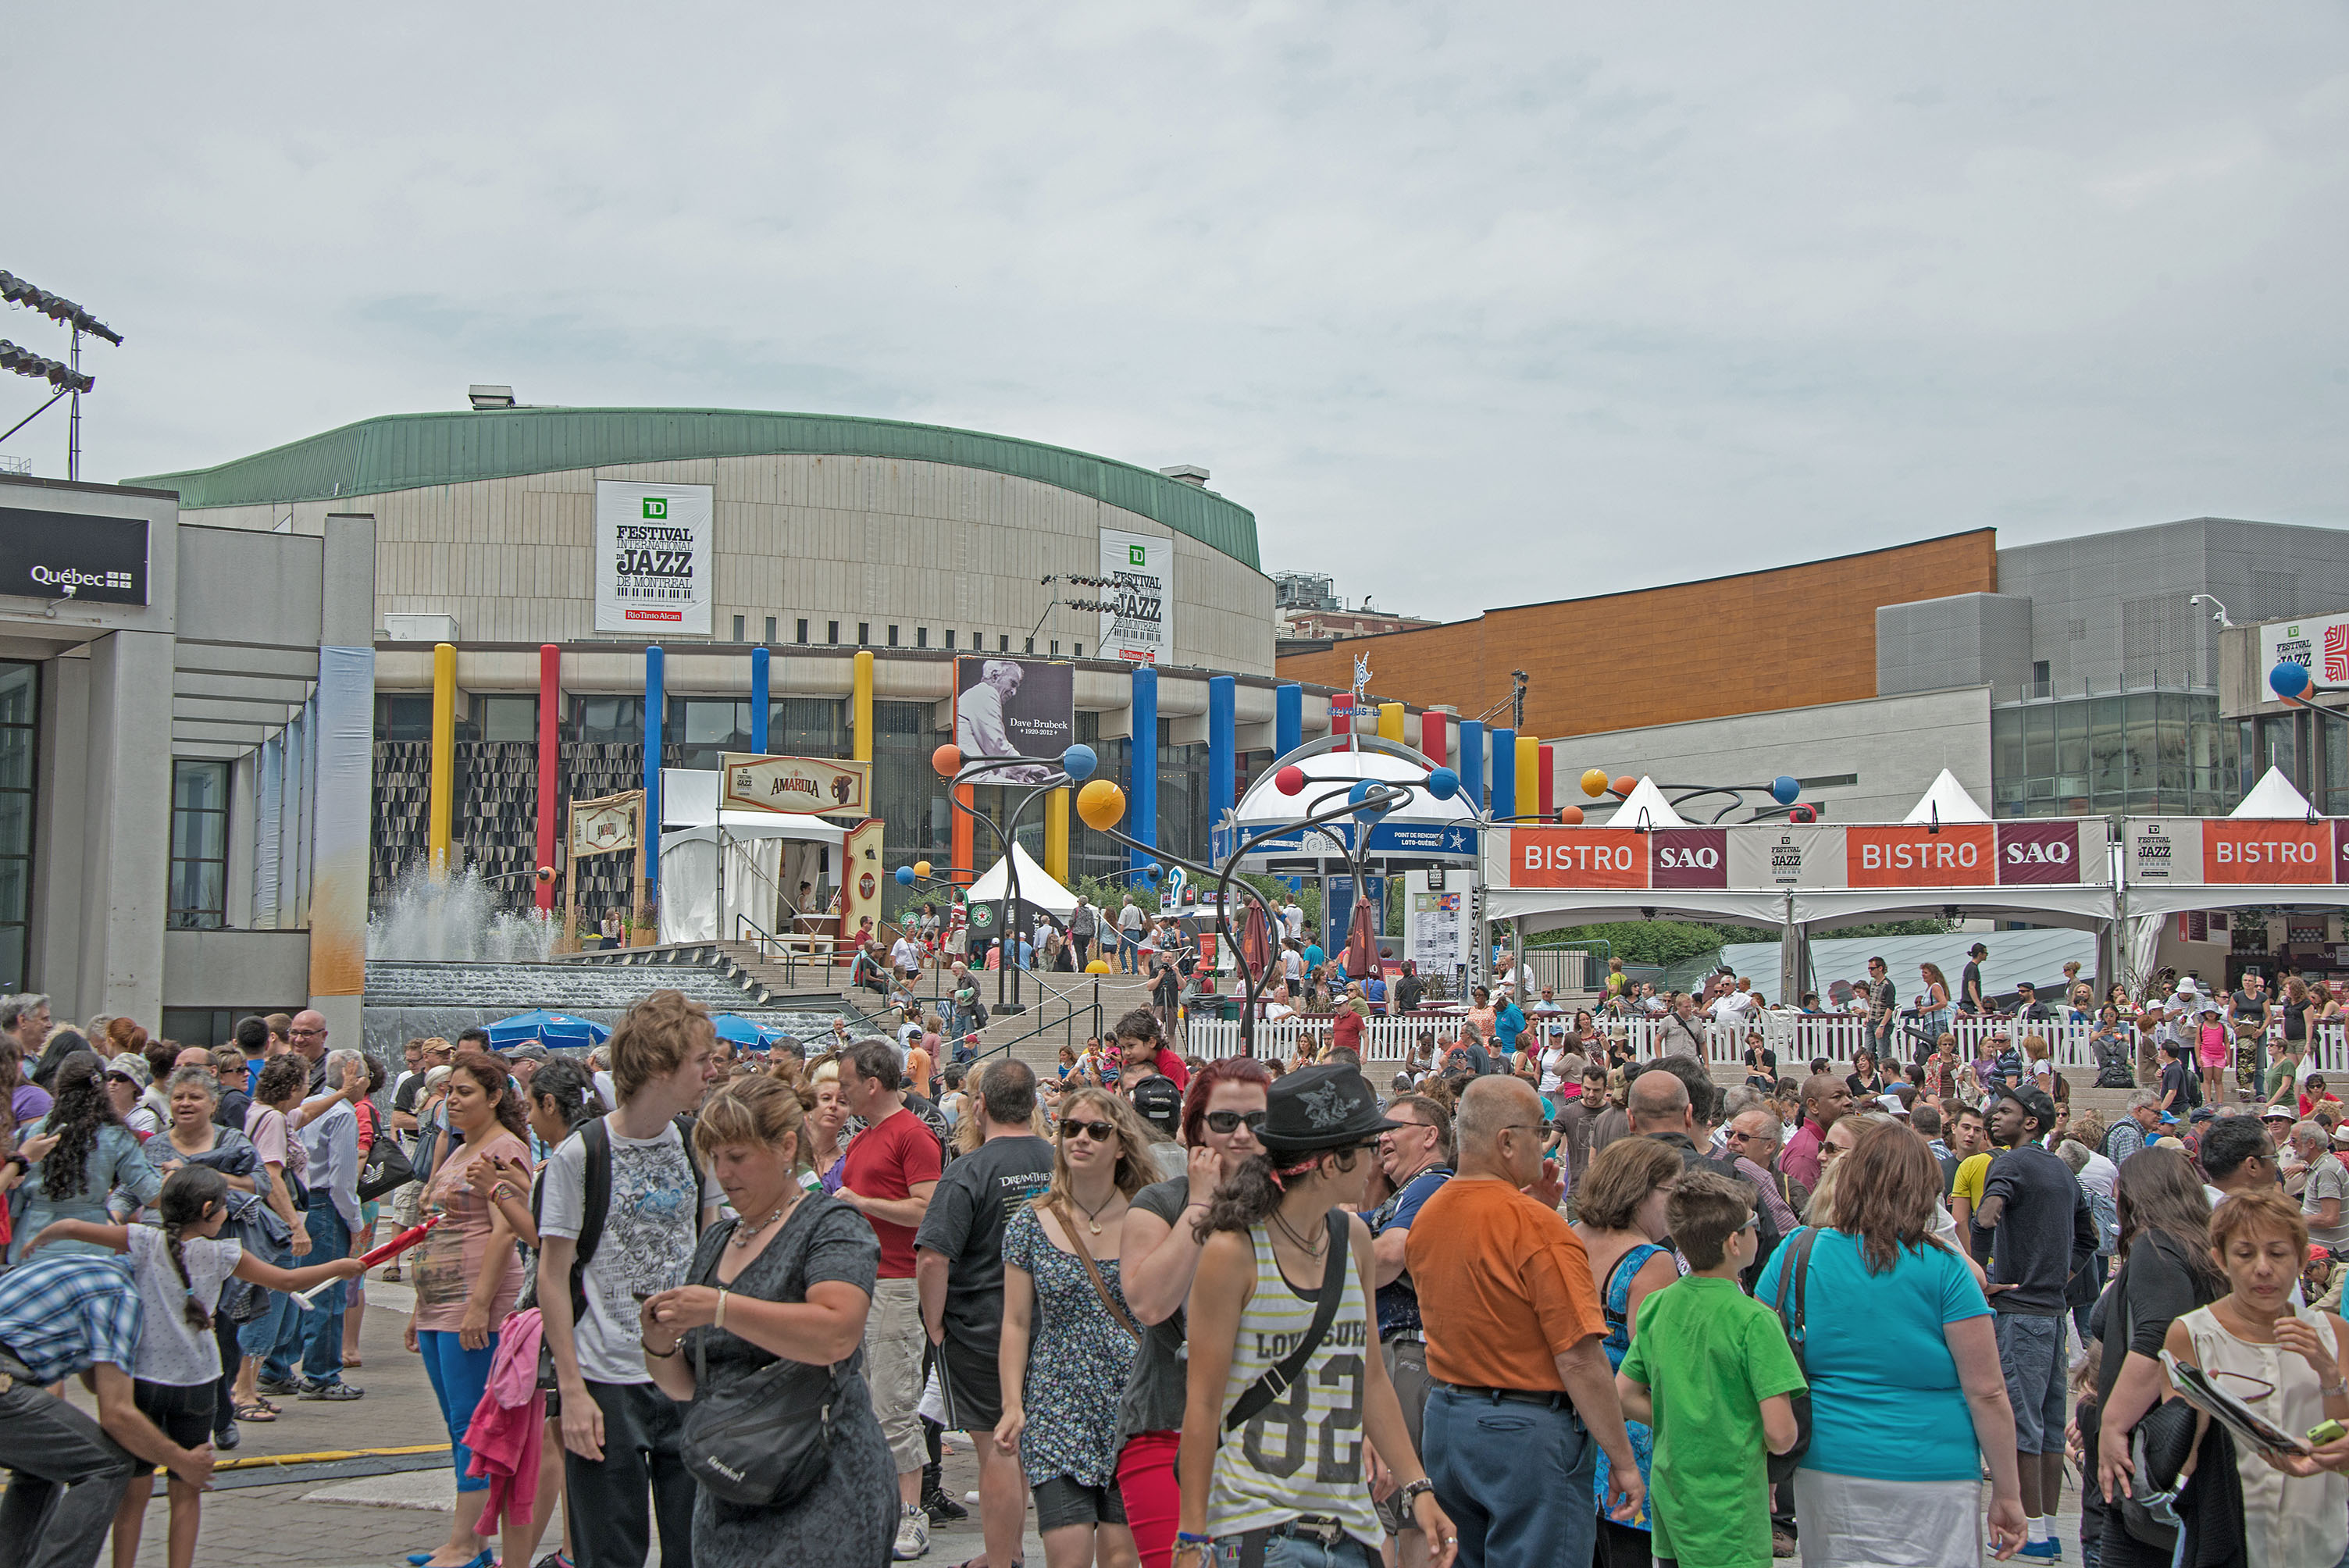 Scenes from 2013 montreal jazz festival